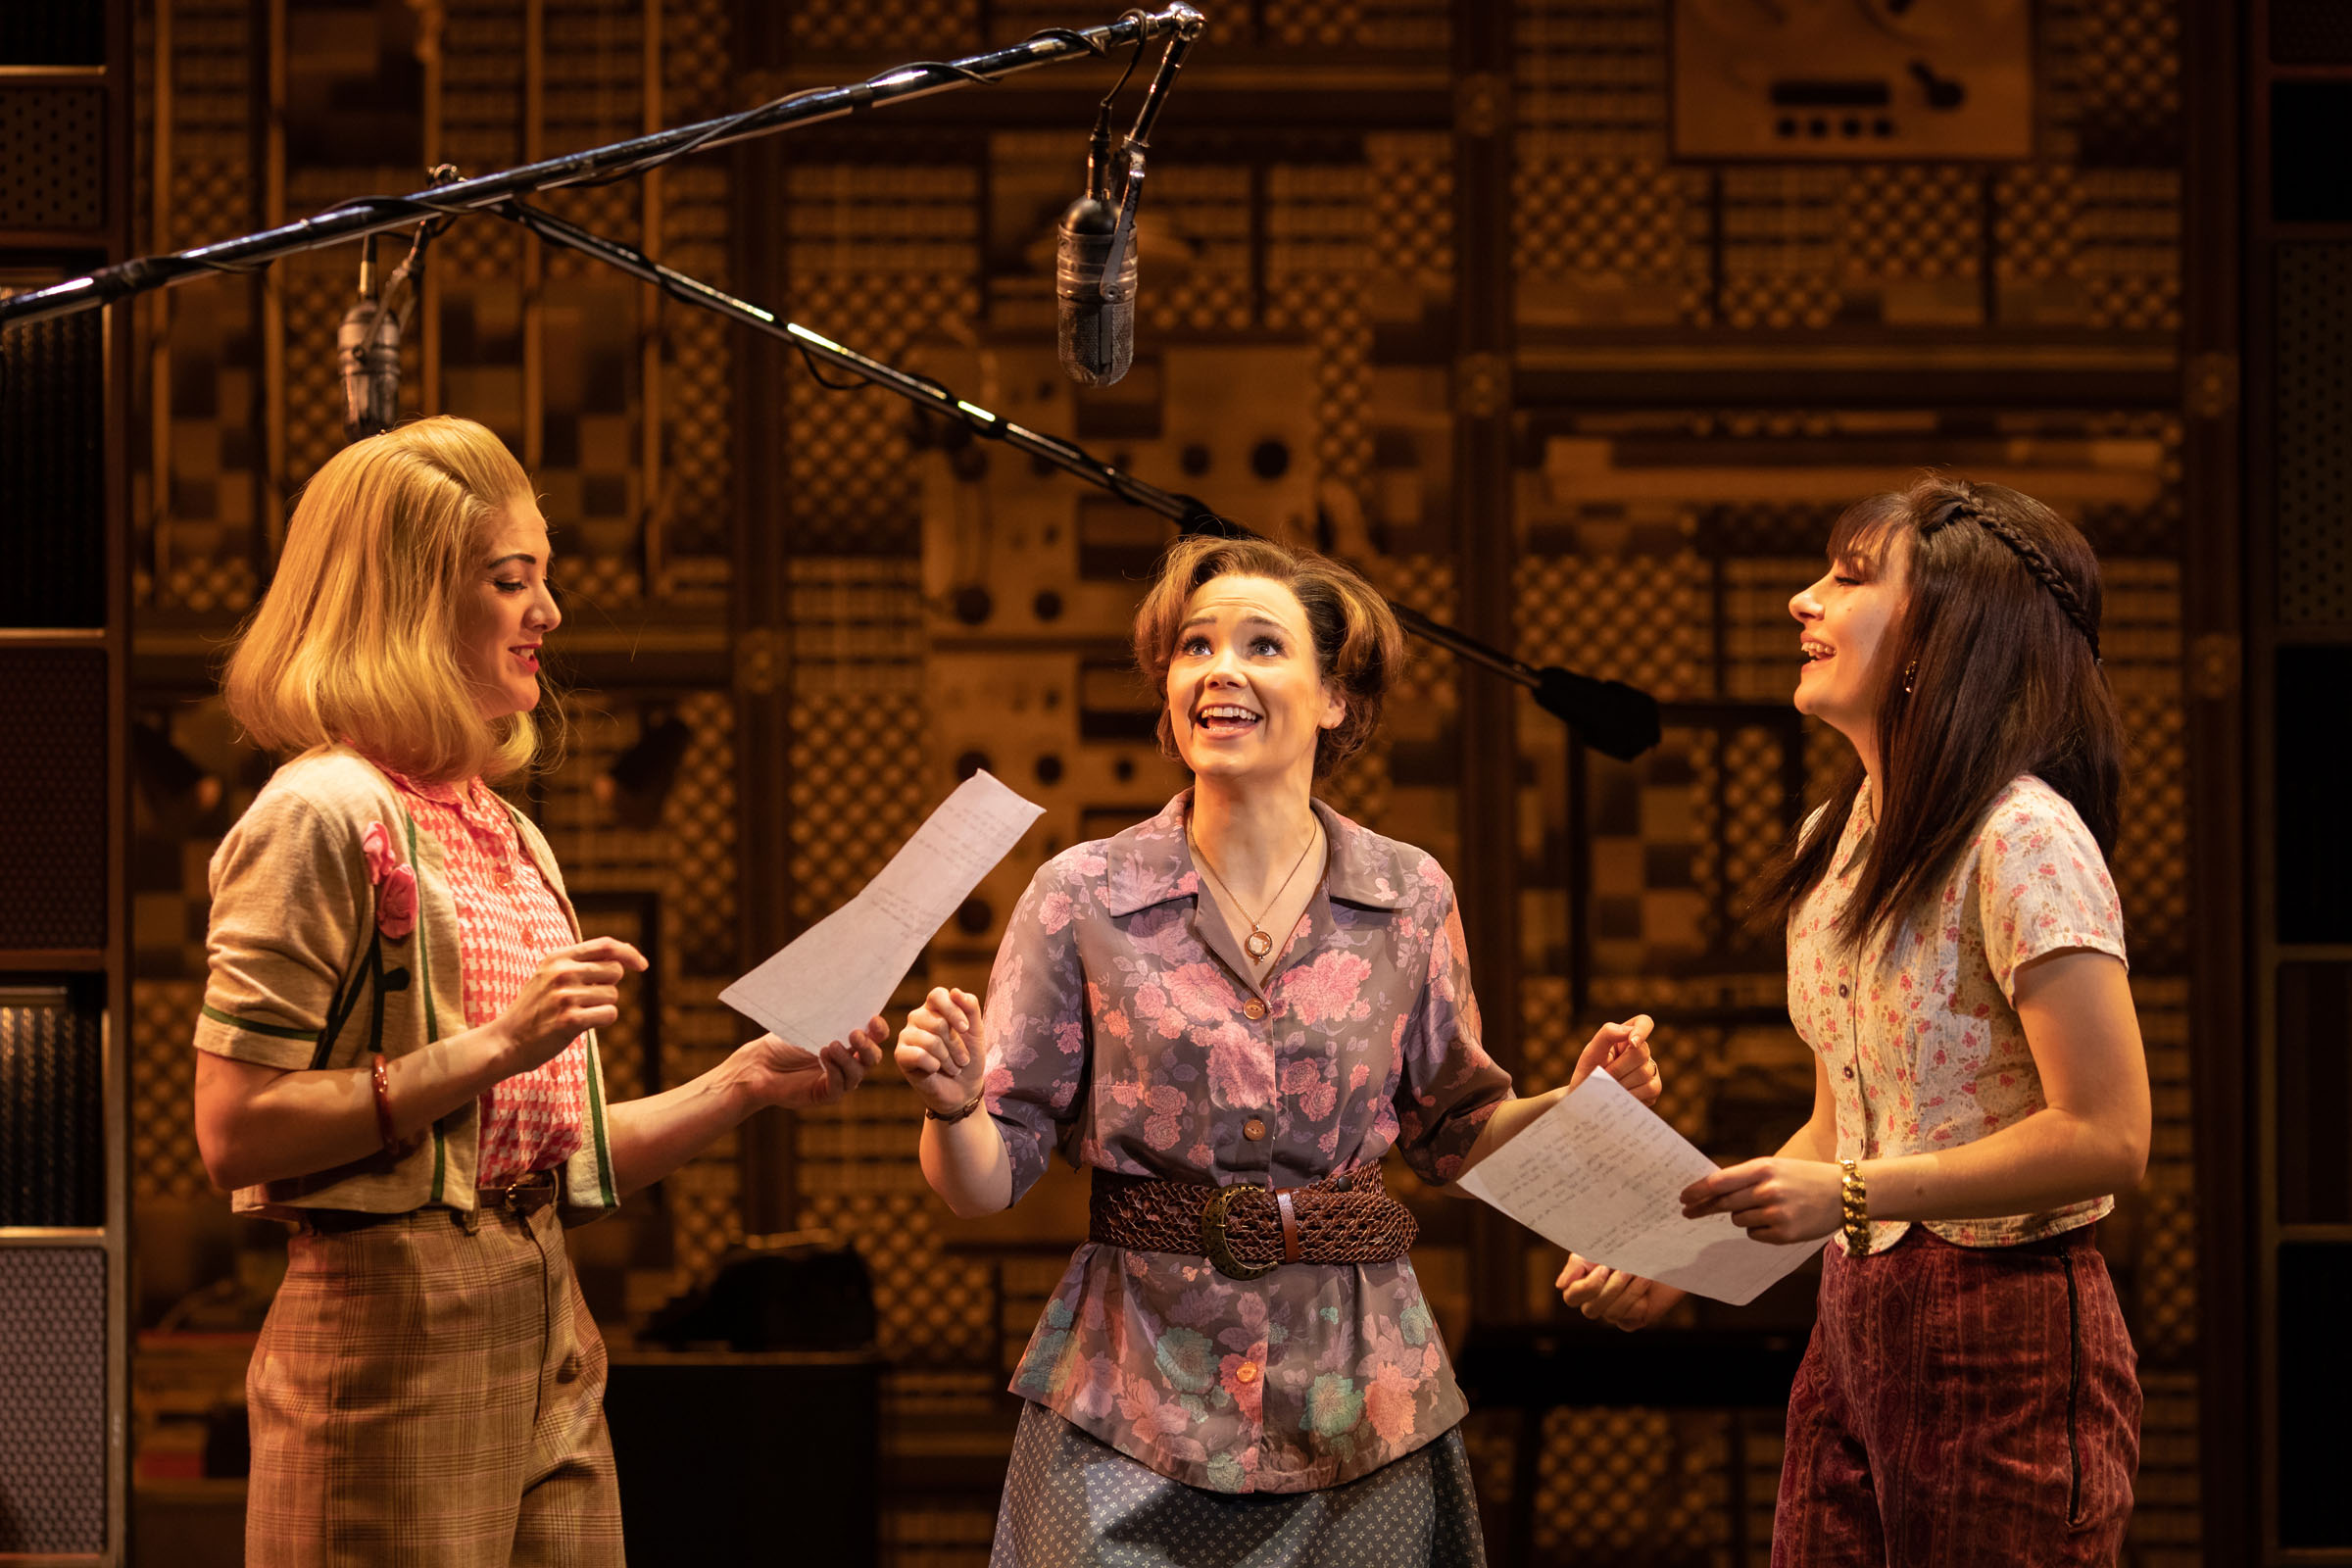 Carly Cook, Daisy Wood-Davis and Julia Dray sing during 'Beautiful'